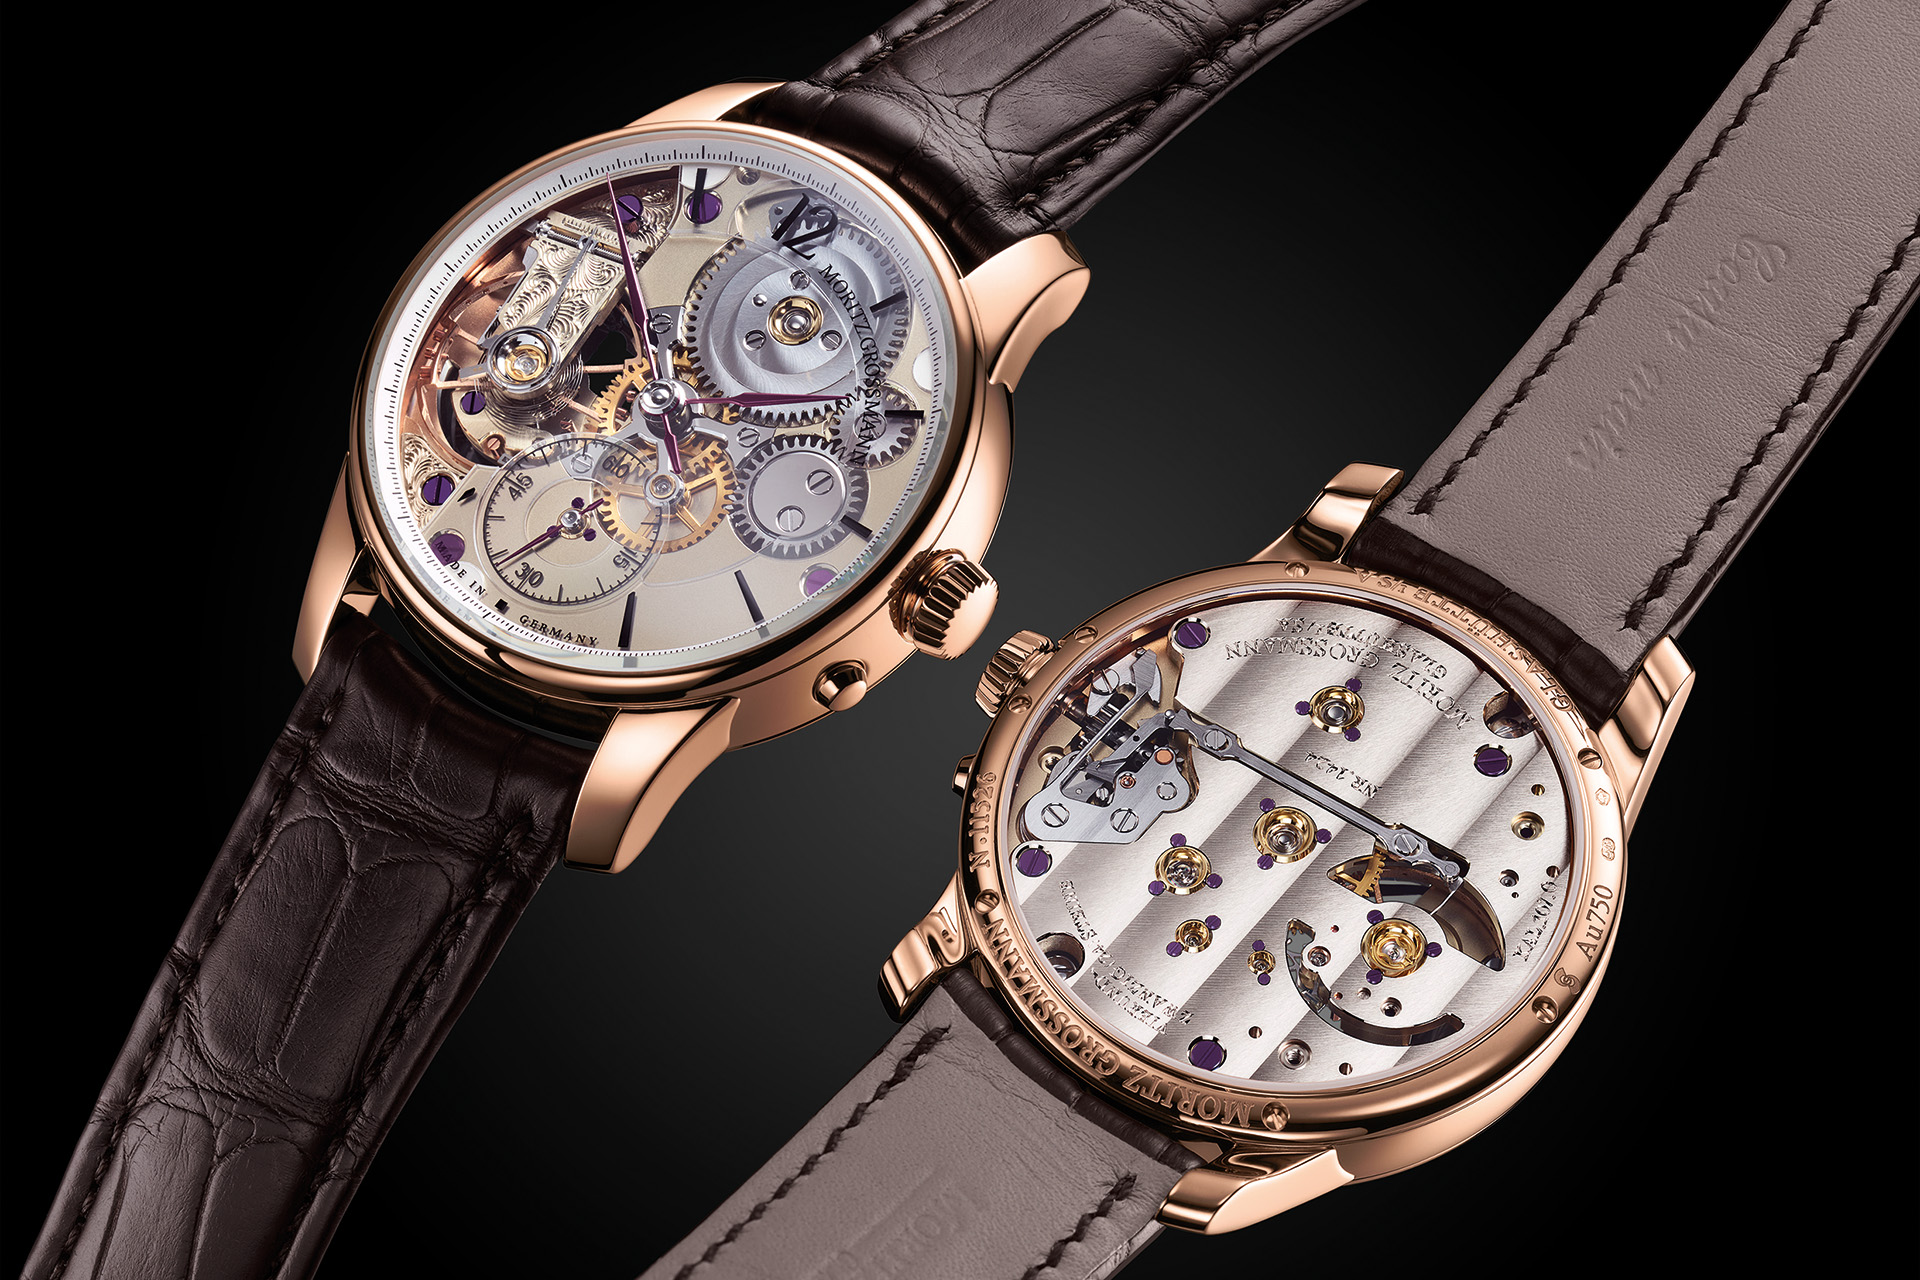 Videos: Moritz Grossmann Backpage Transparent